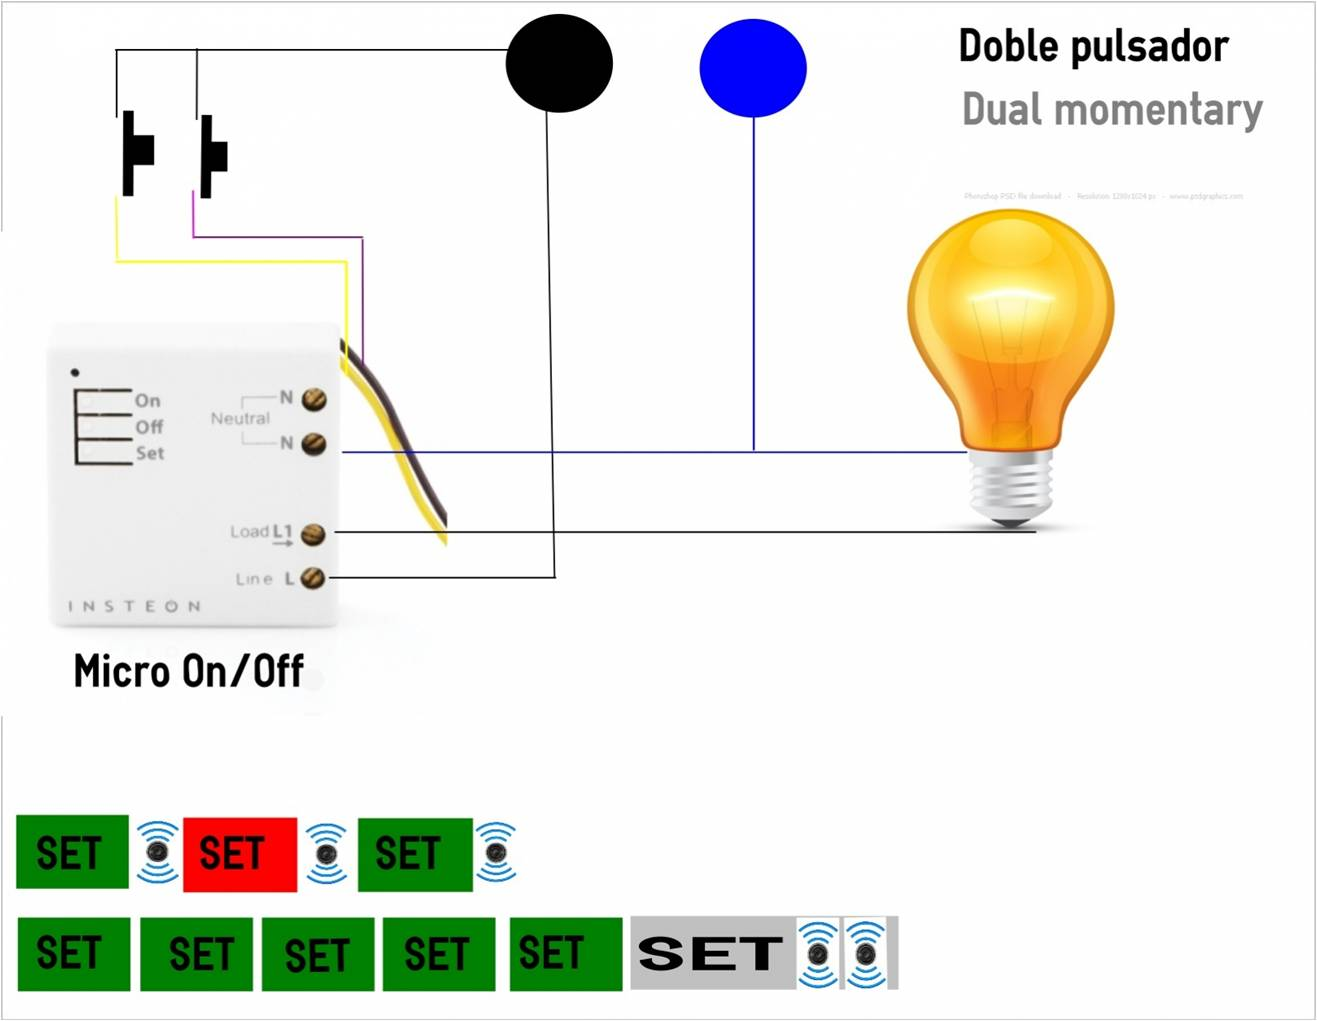 Micromodulo Insteon On/Off  controlado mediante doble pulsador